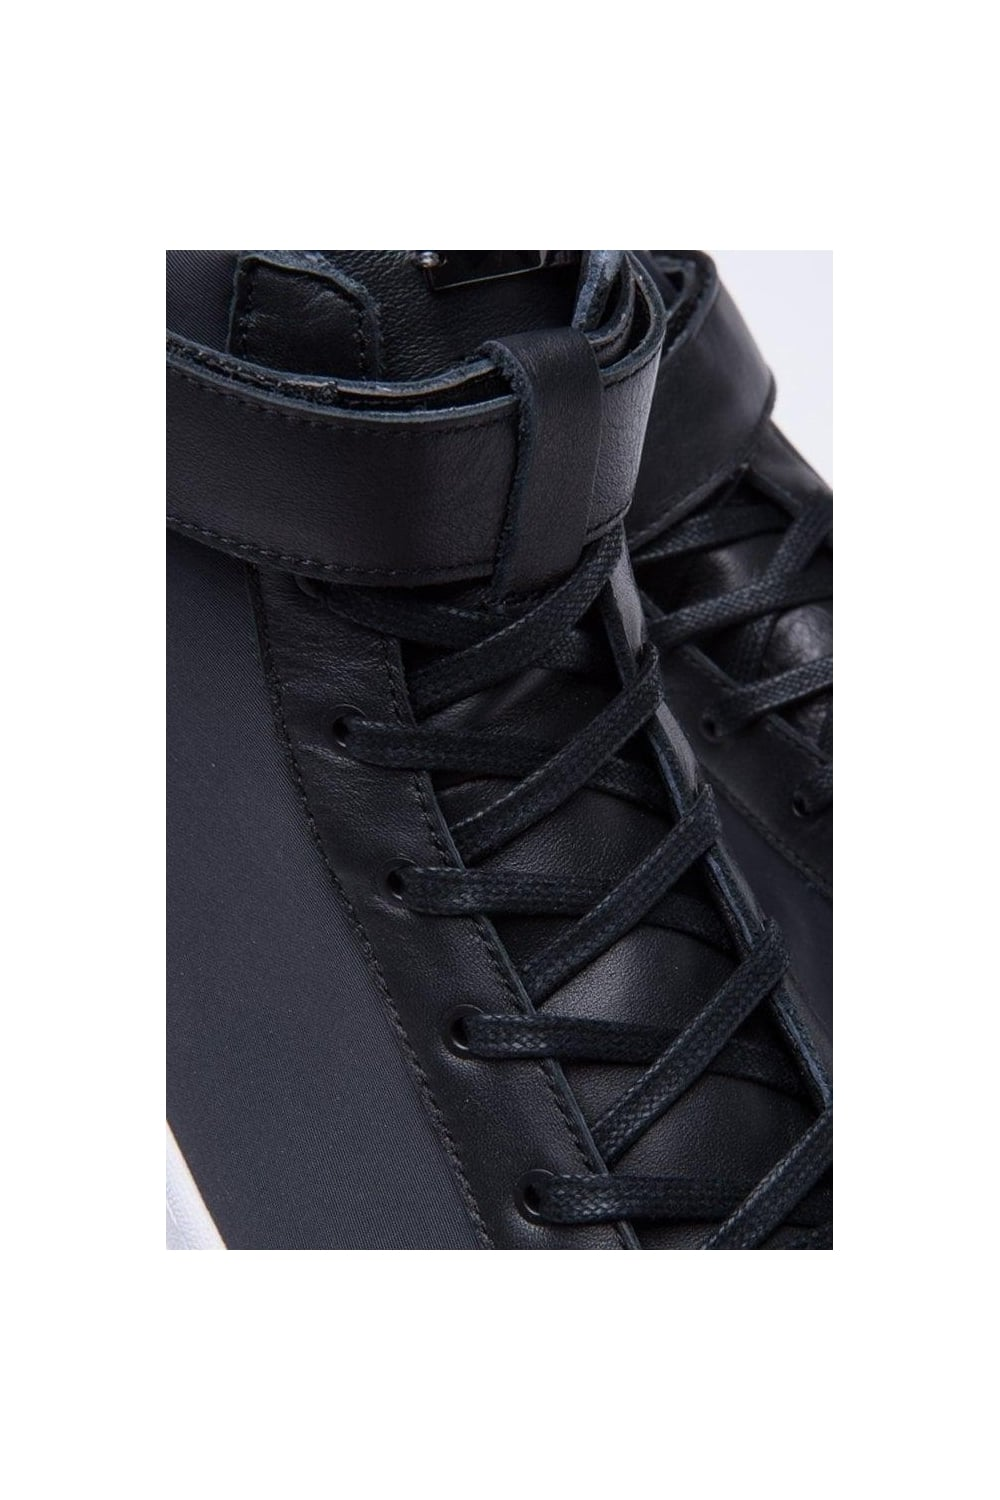 8659effc9996 SLVR Cupsole Hi Top Trainers Black